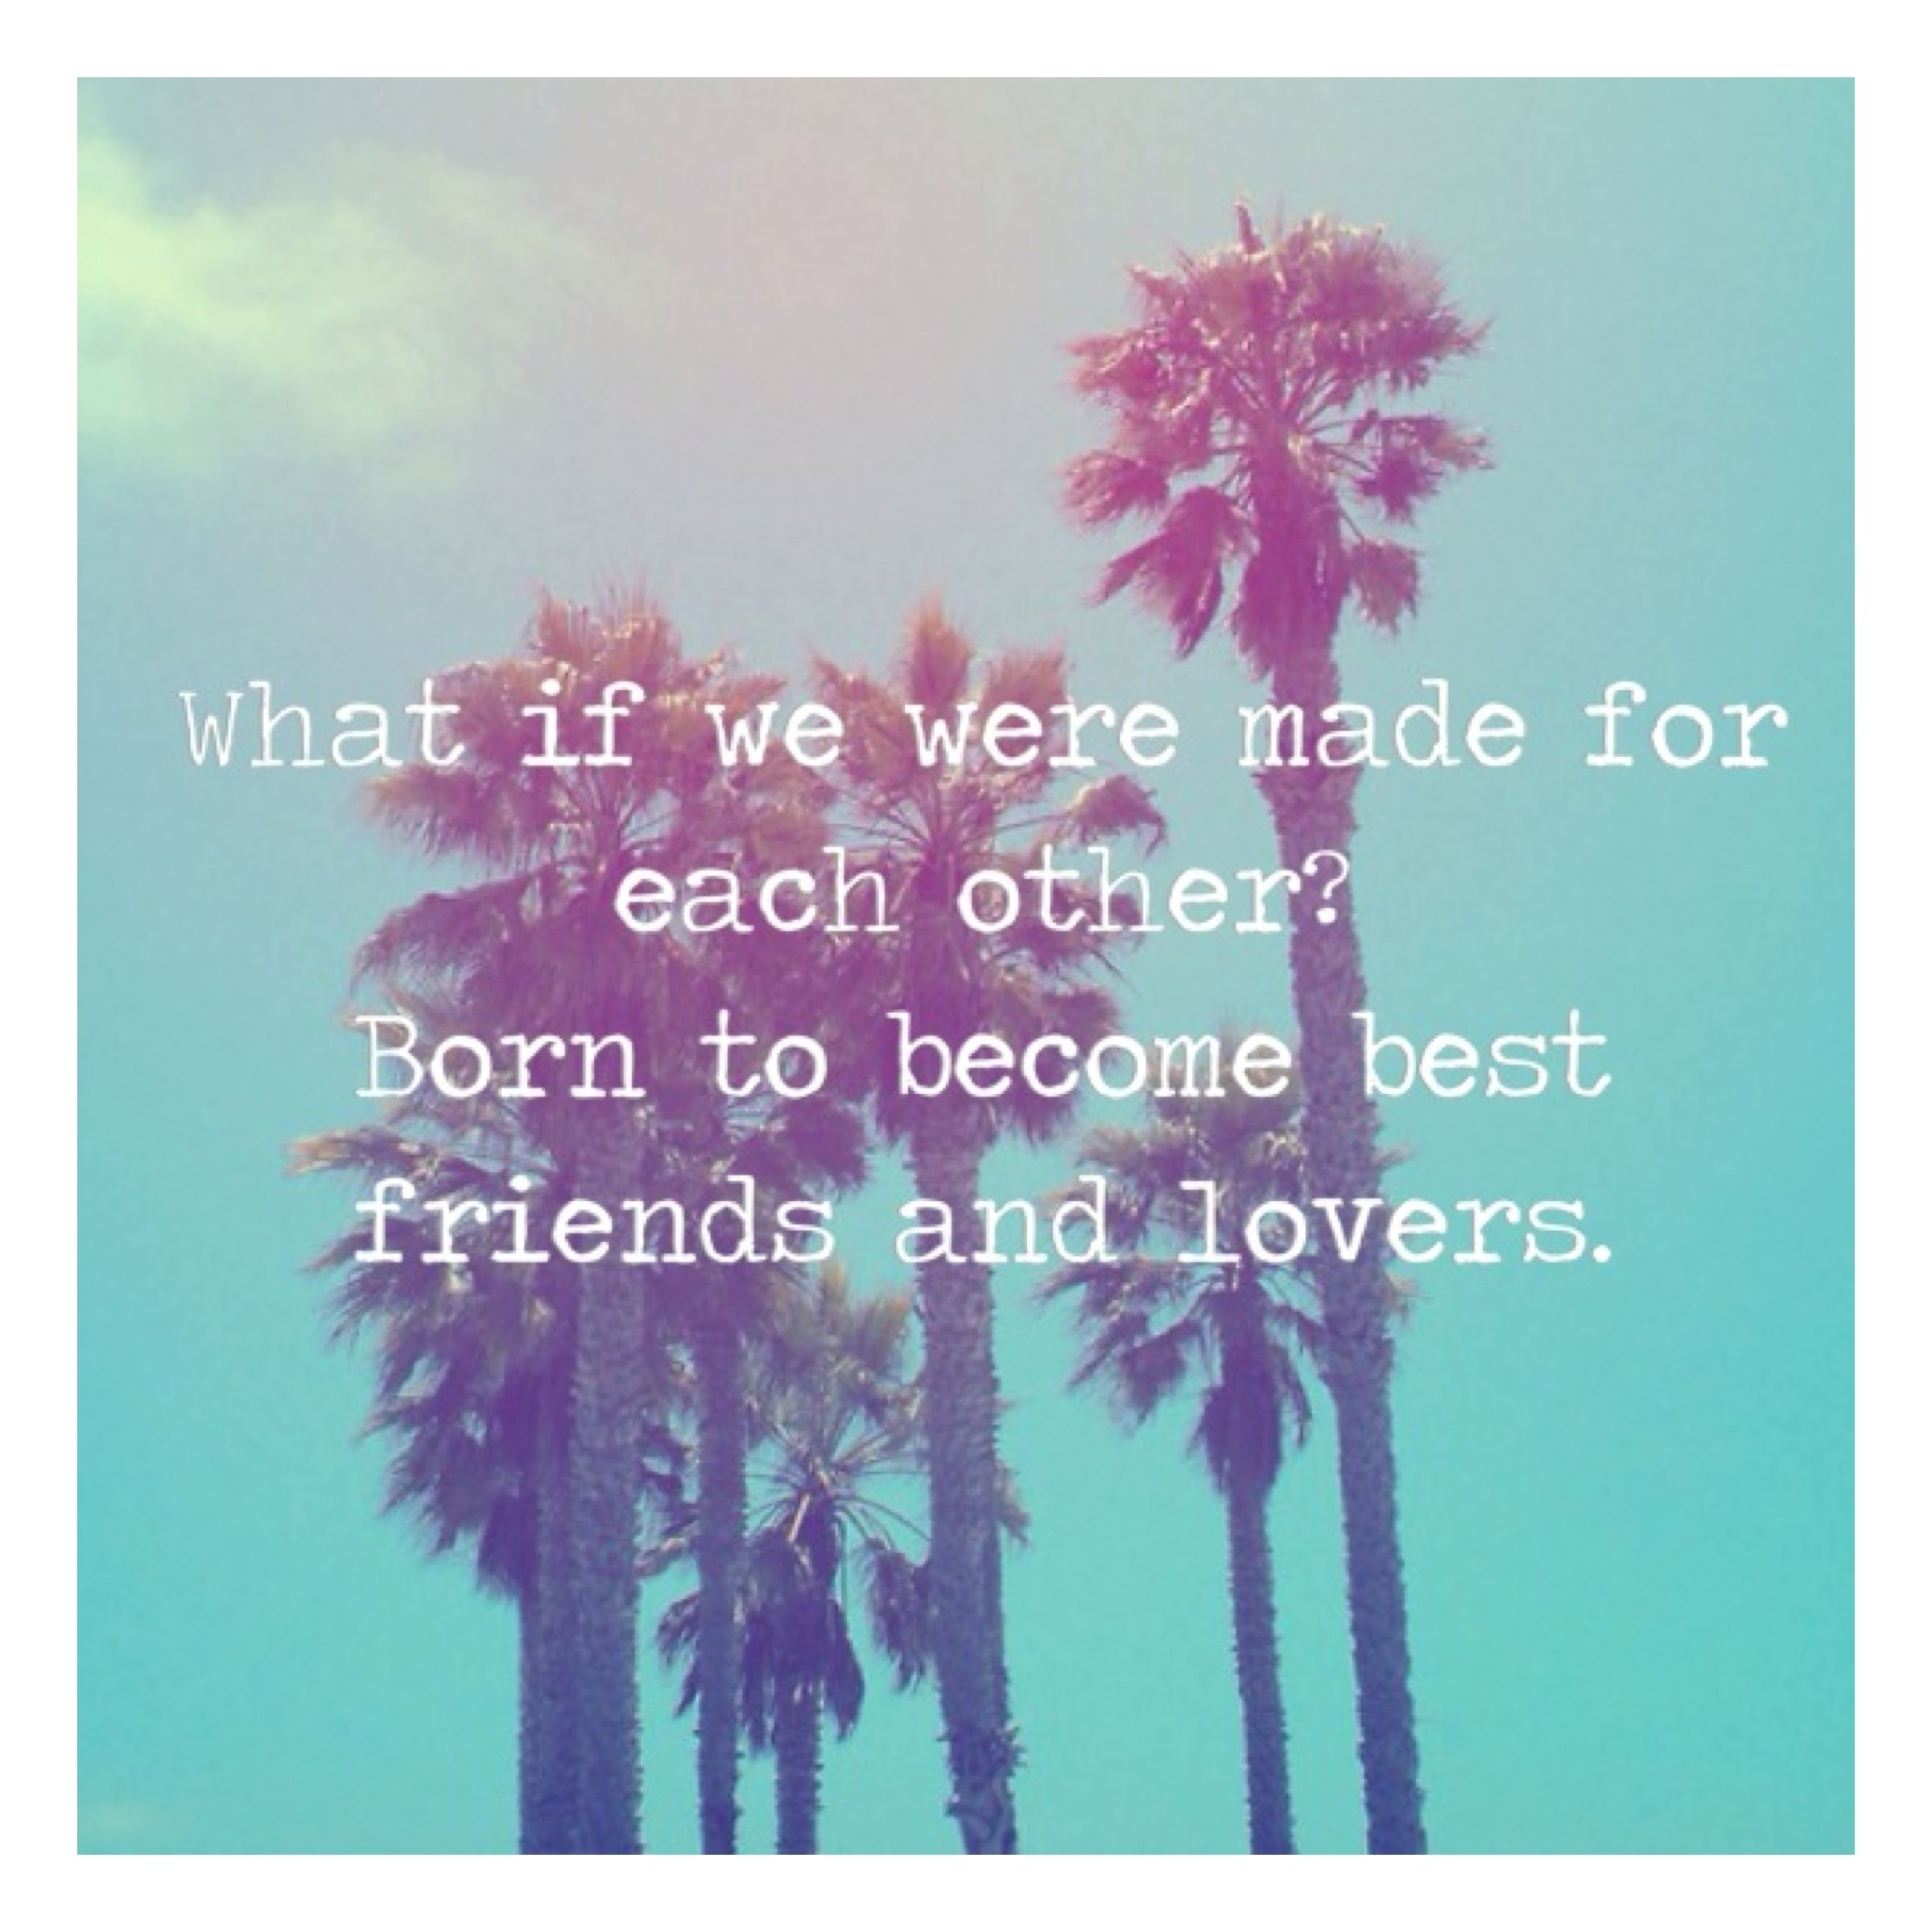 Made For Each Other: What If We Were Made For Each Other? Born To Become Best